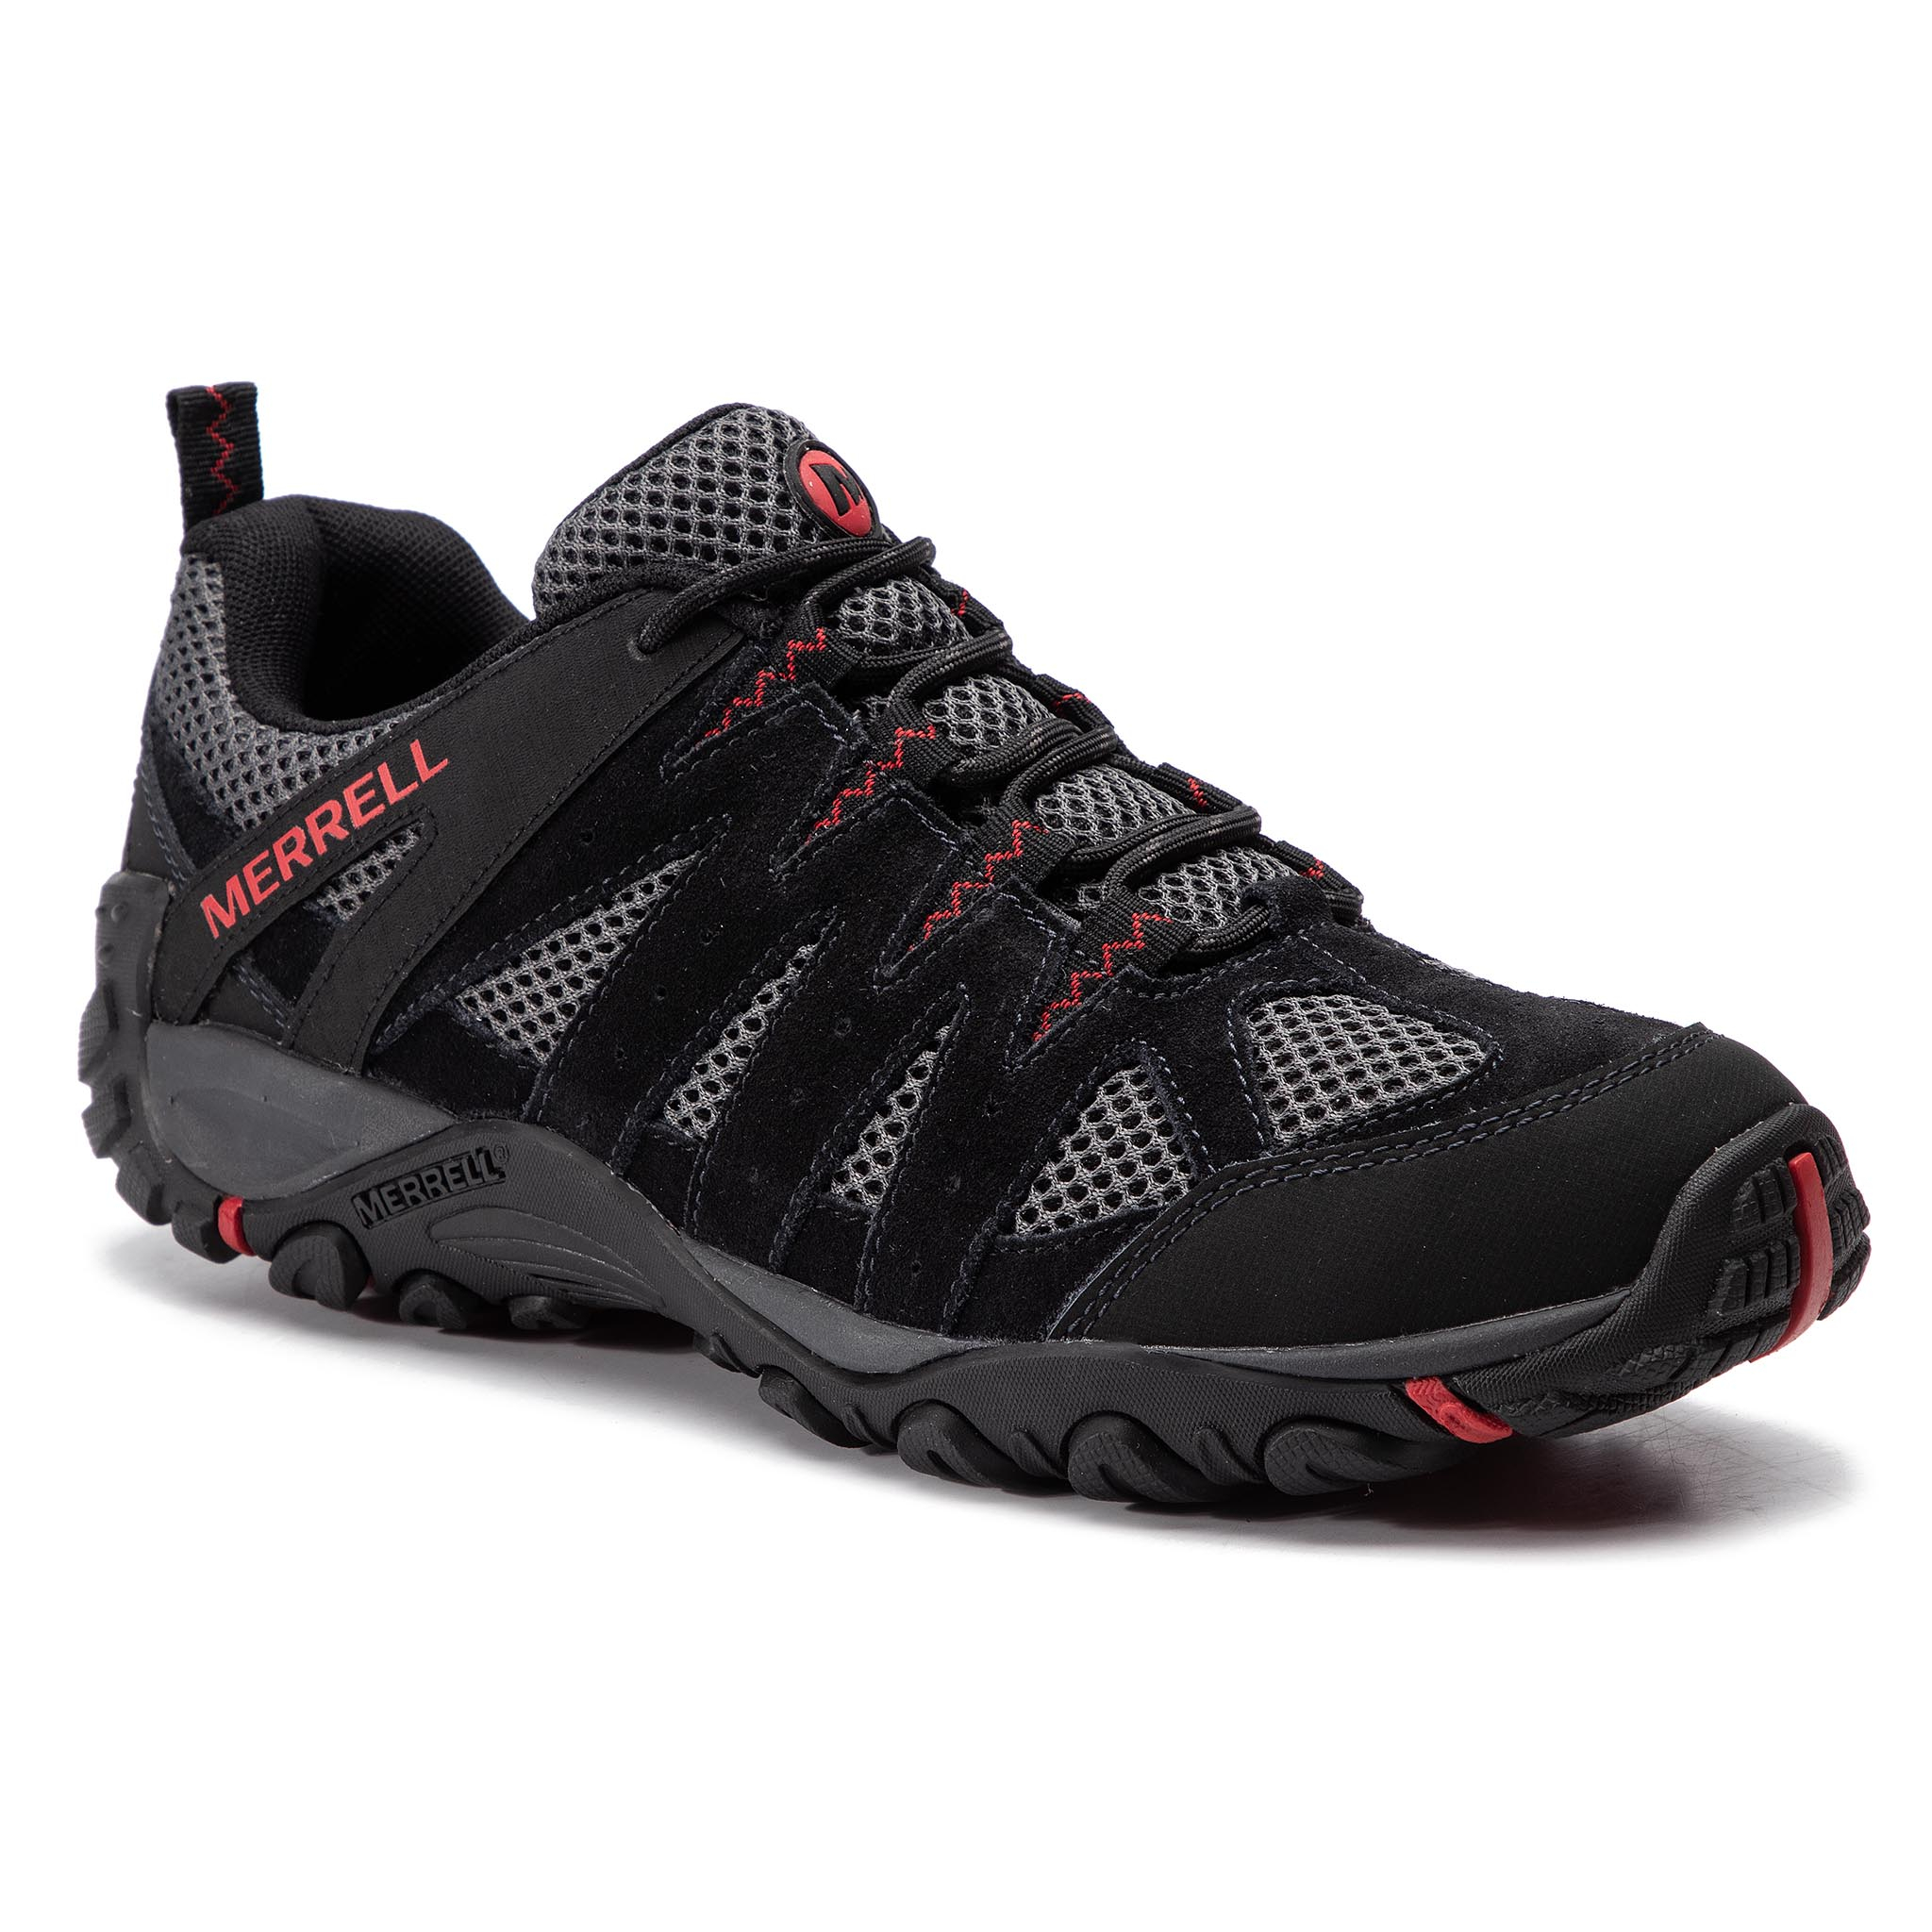 Trekkings Merrell - Accentor 2 Vent J48517 Black imagine epantofi.ro 2021